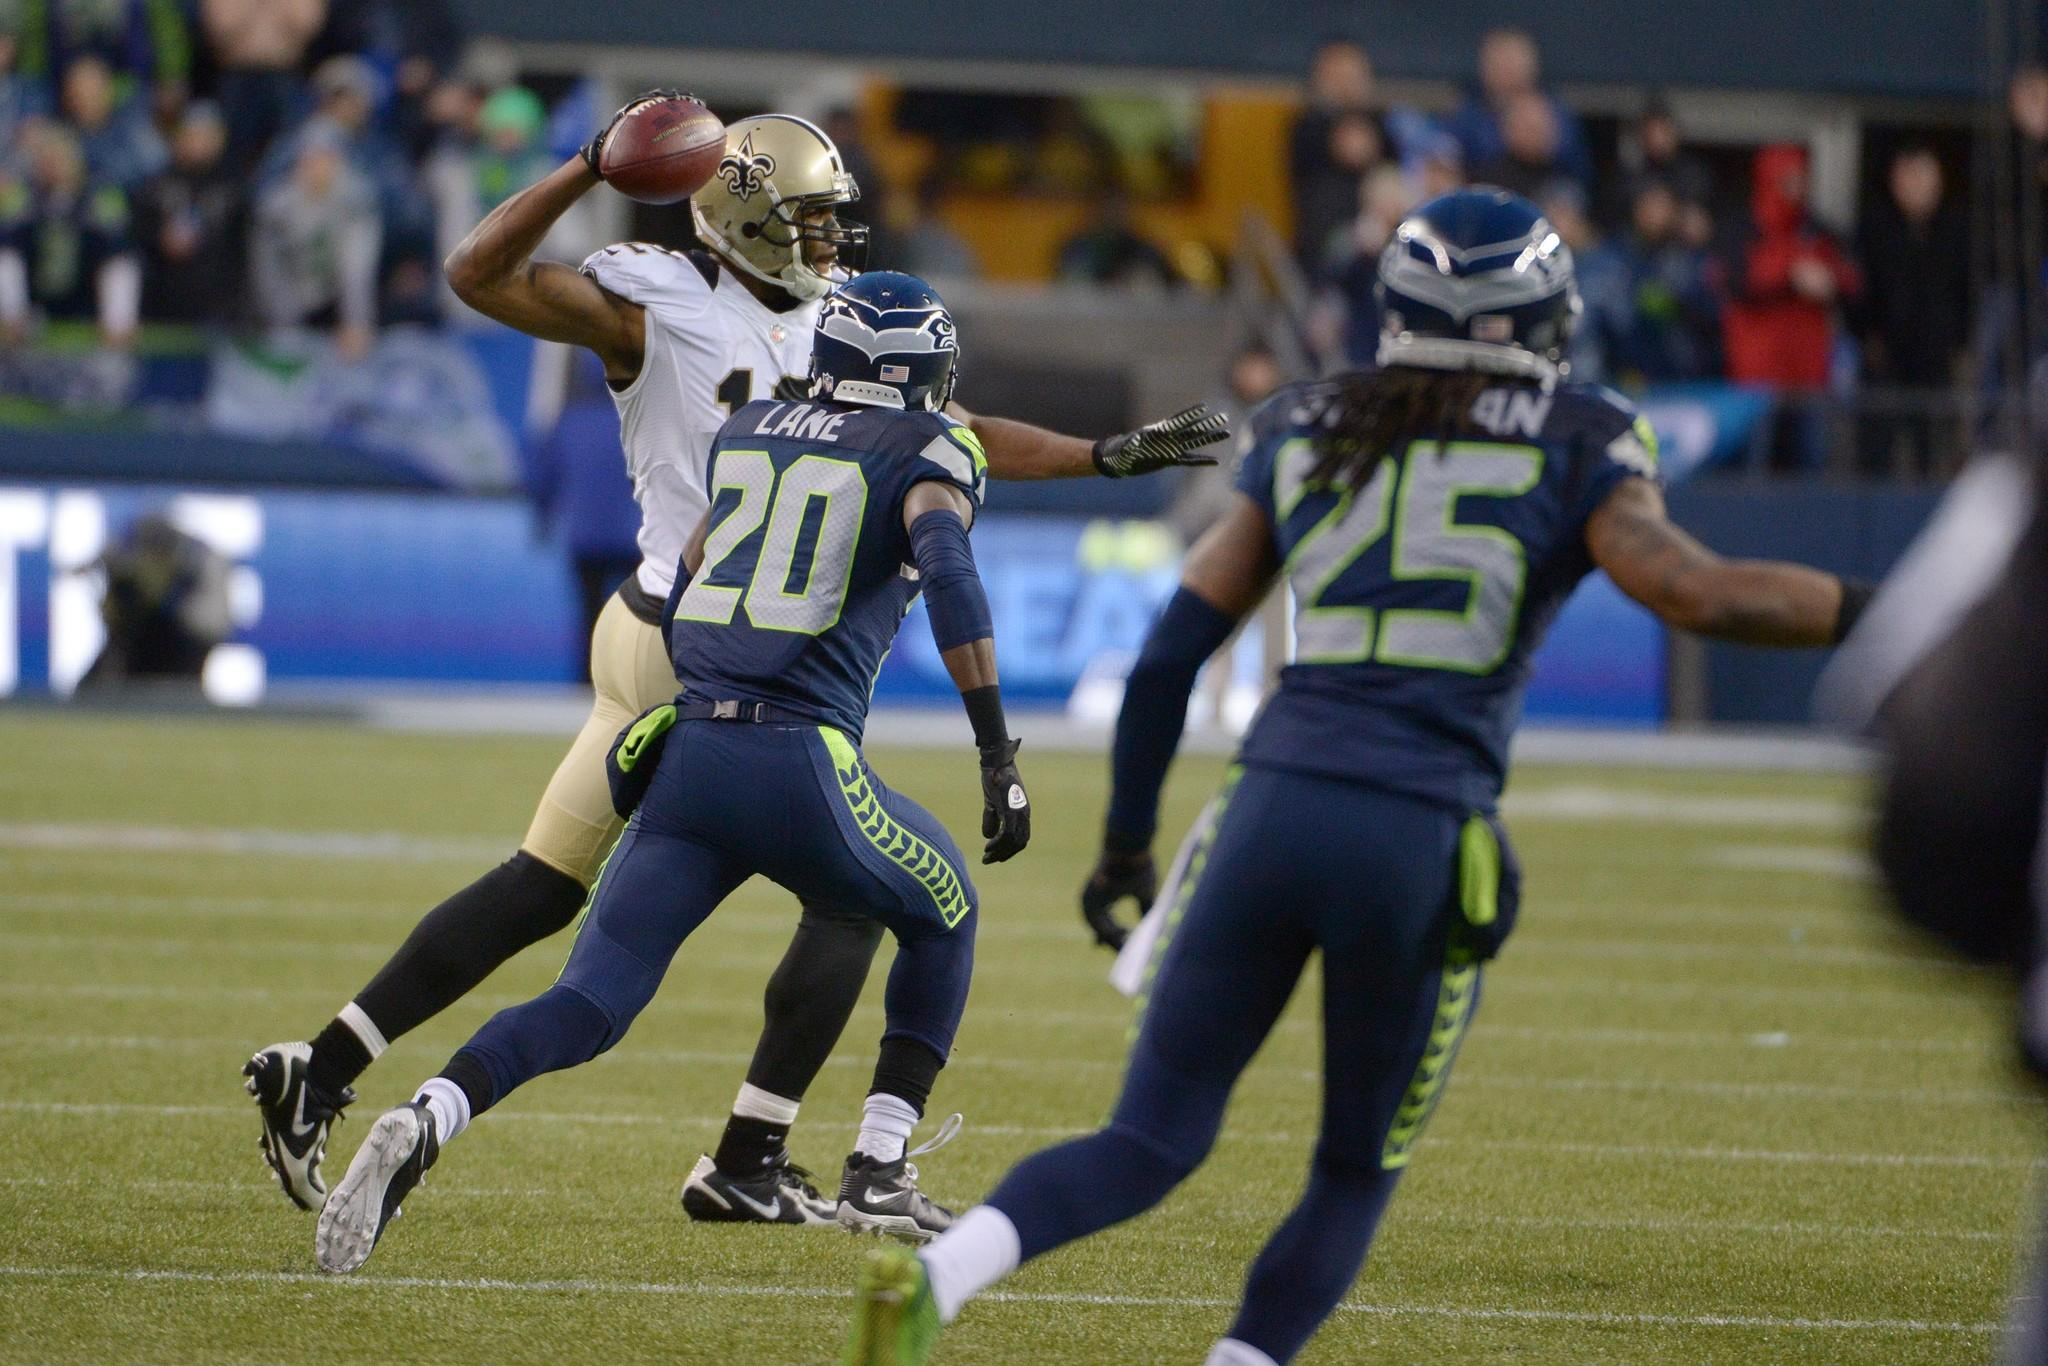 Saints wide receiver Marques Colston (12) throws an illegal forward pass against Seattle Seahawks cornerbacks Jeremy Lane (20) and Richard Sherman (25).